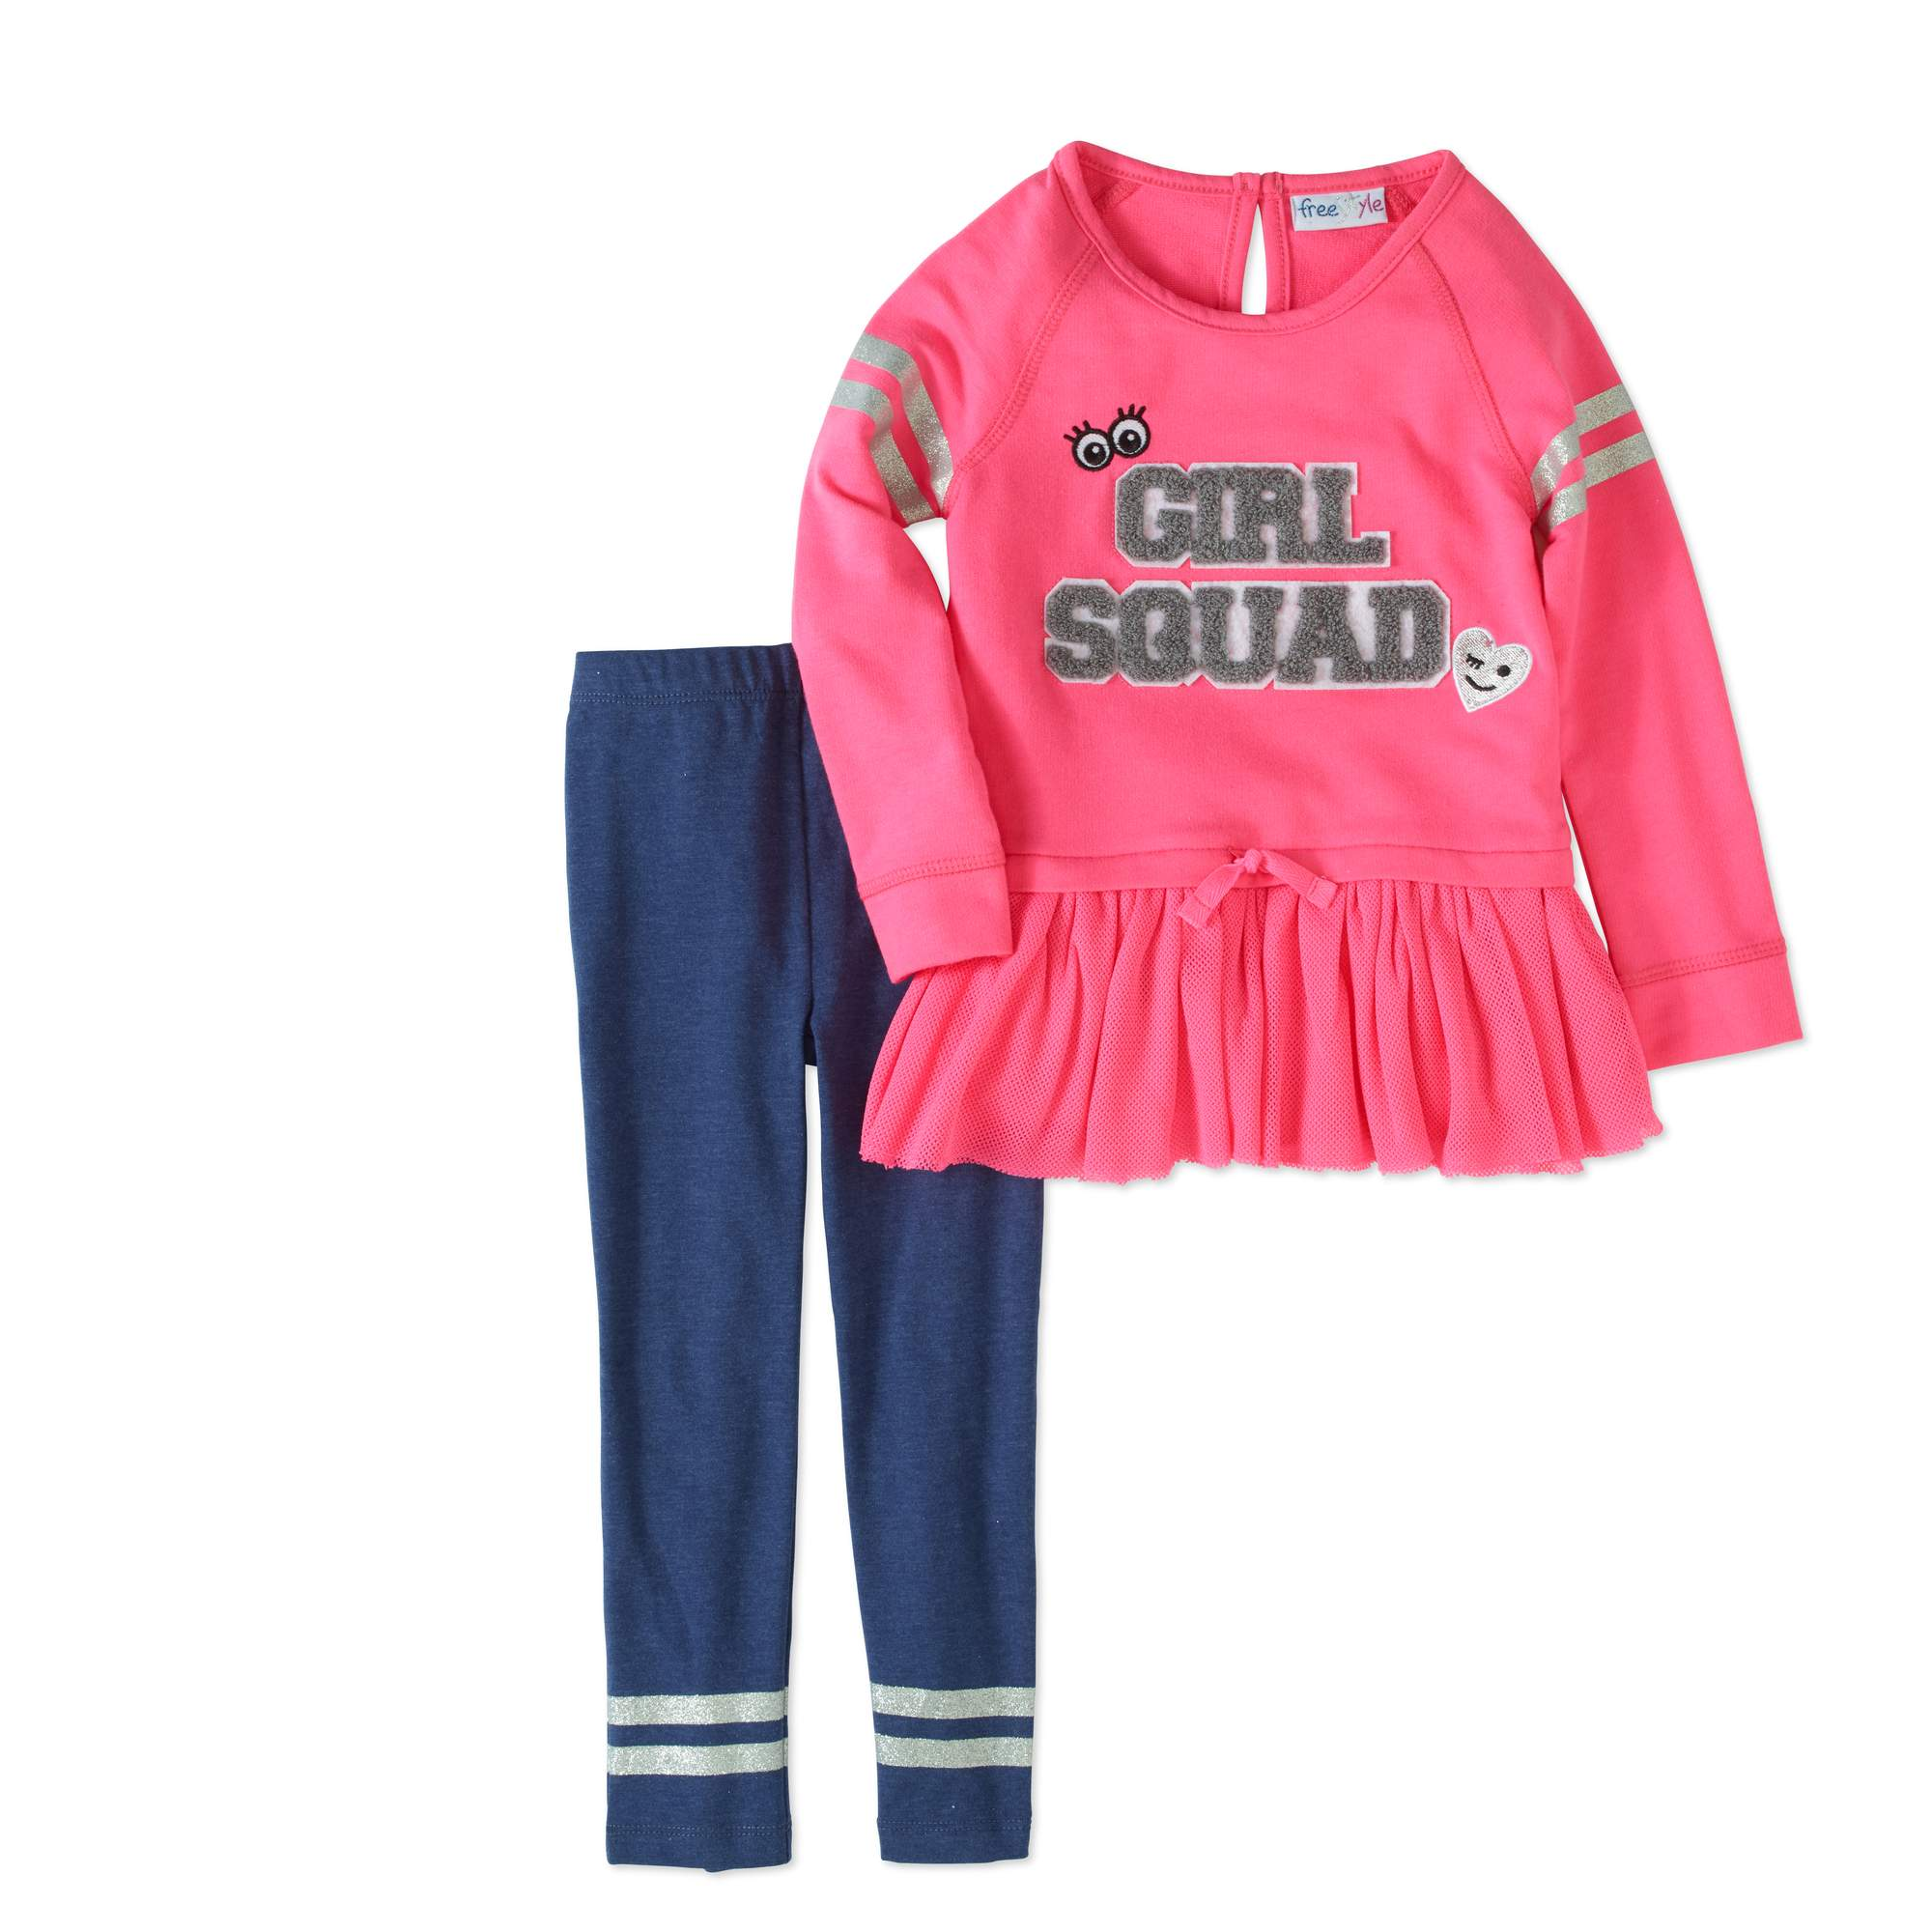 Freestyle Link Freestyle Toddler Girl Long Sleeve French Terry Peplum Top & Legging Outfit 2pc Set